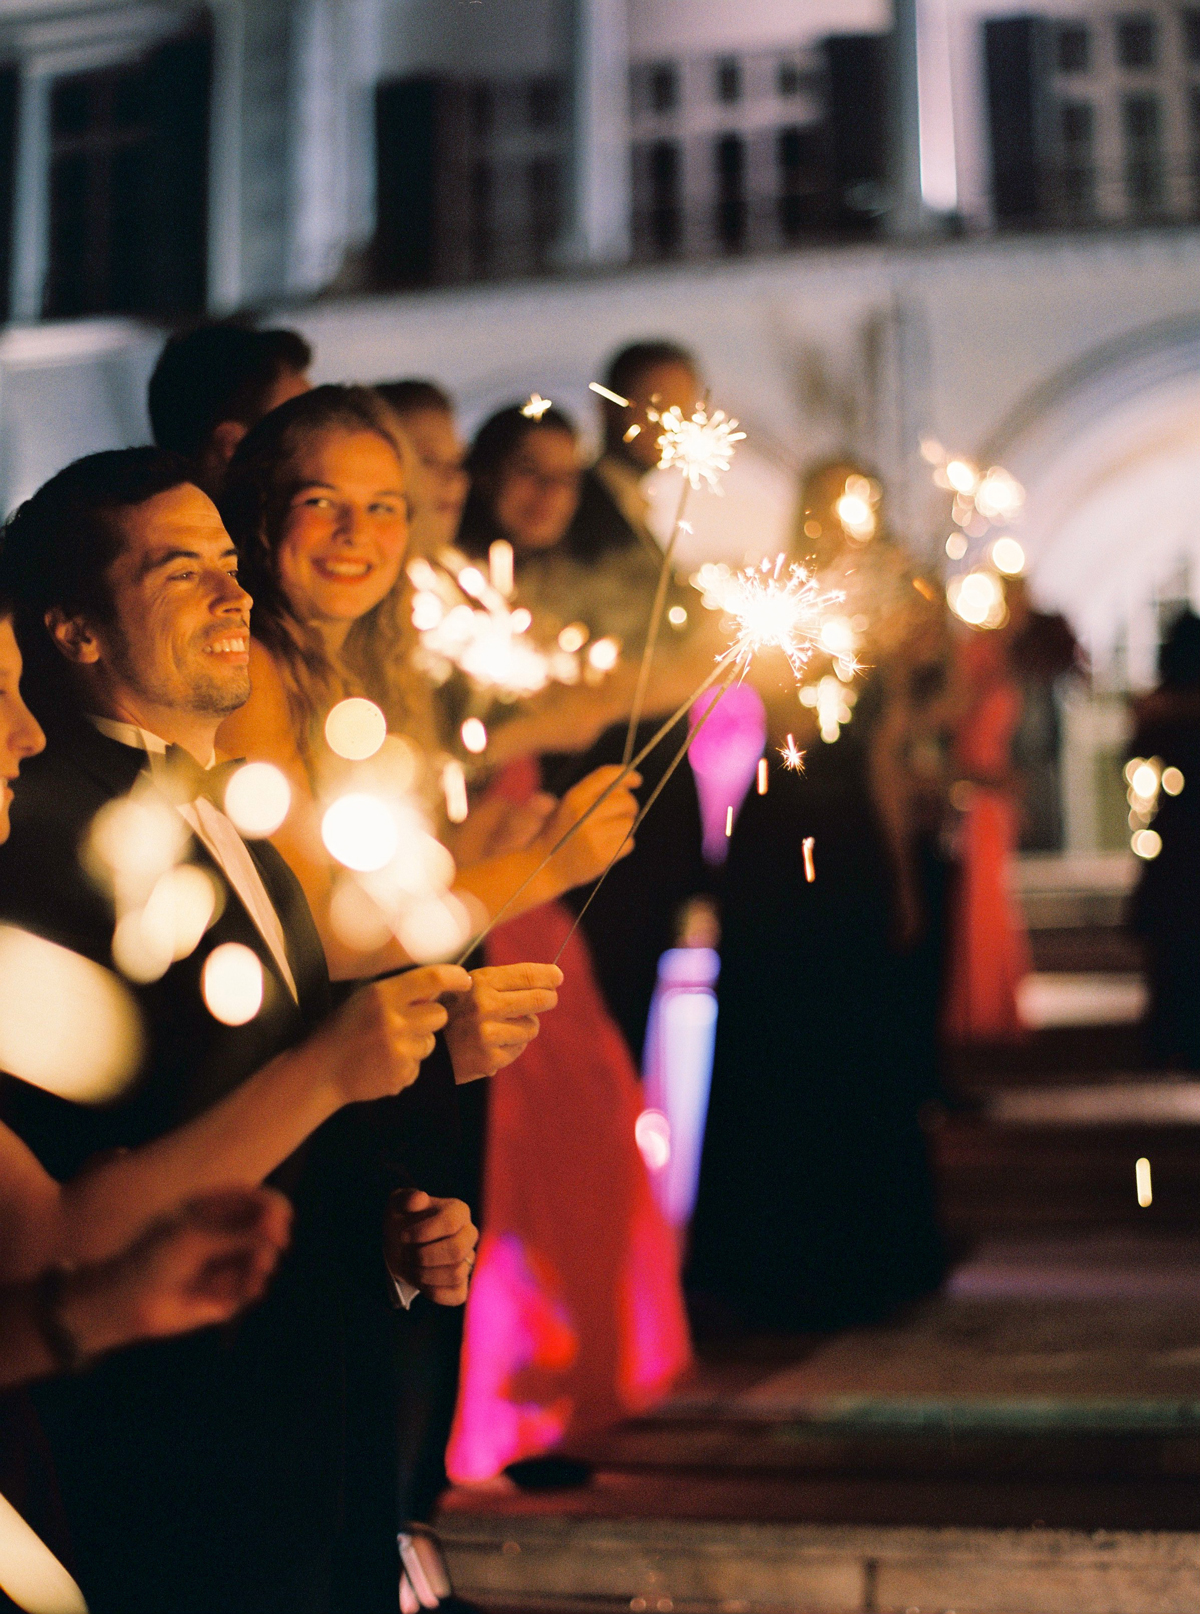 stephanie nikolaus wedding sparklers